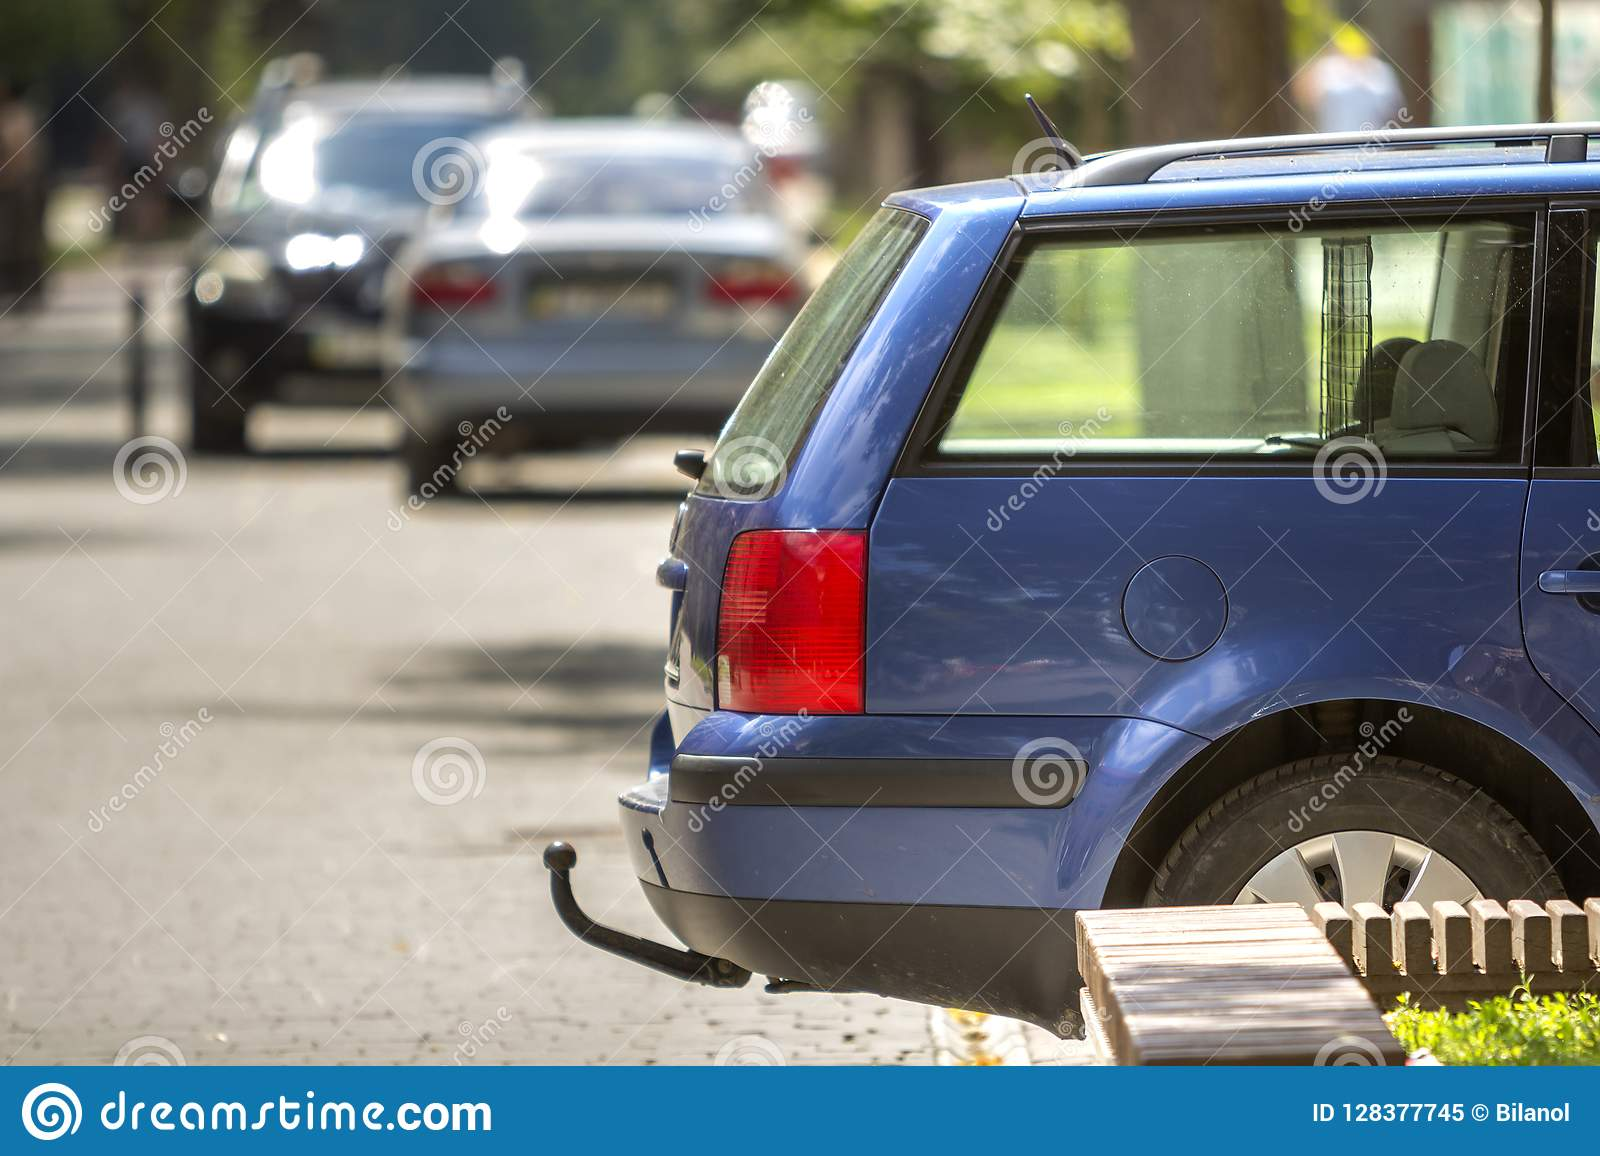 blue car parked on sunny street, red stop lights, hook for